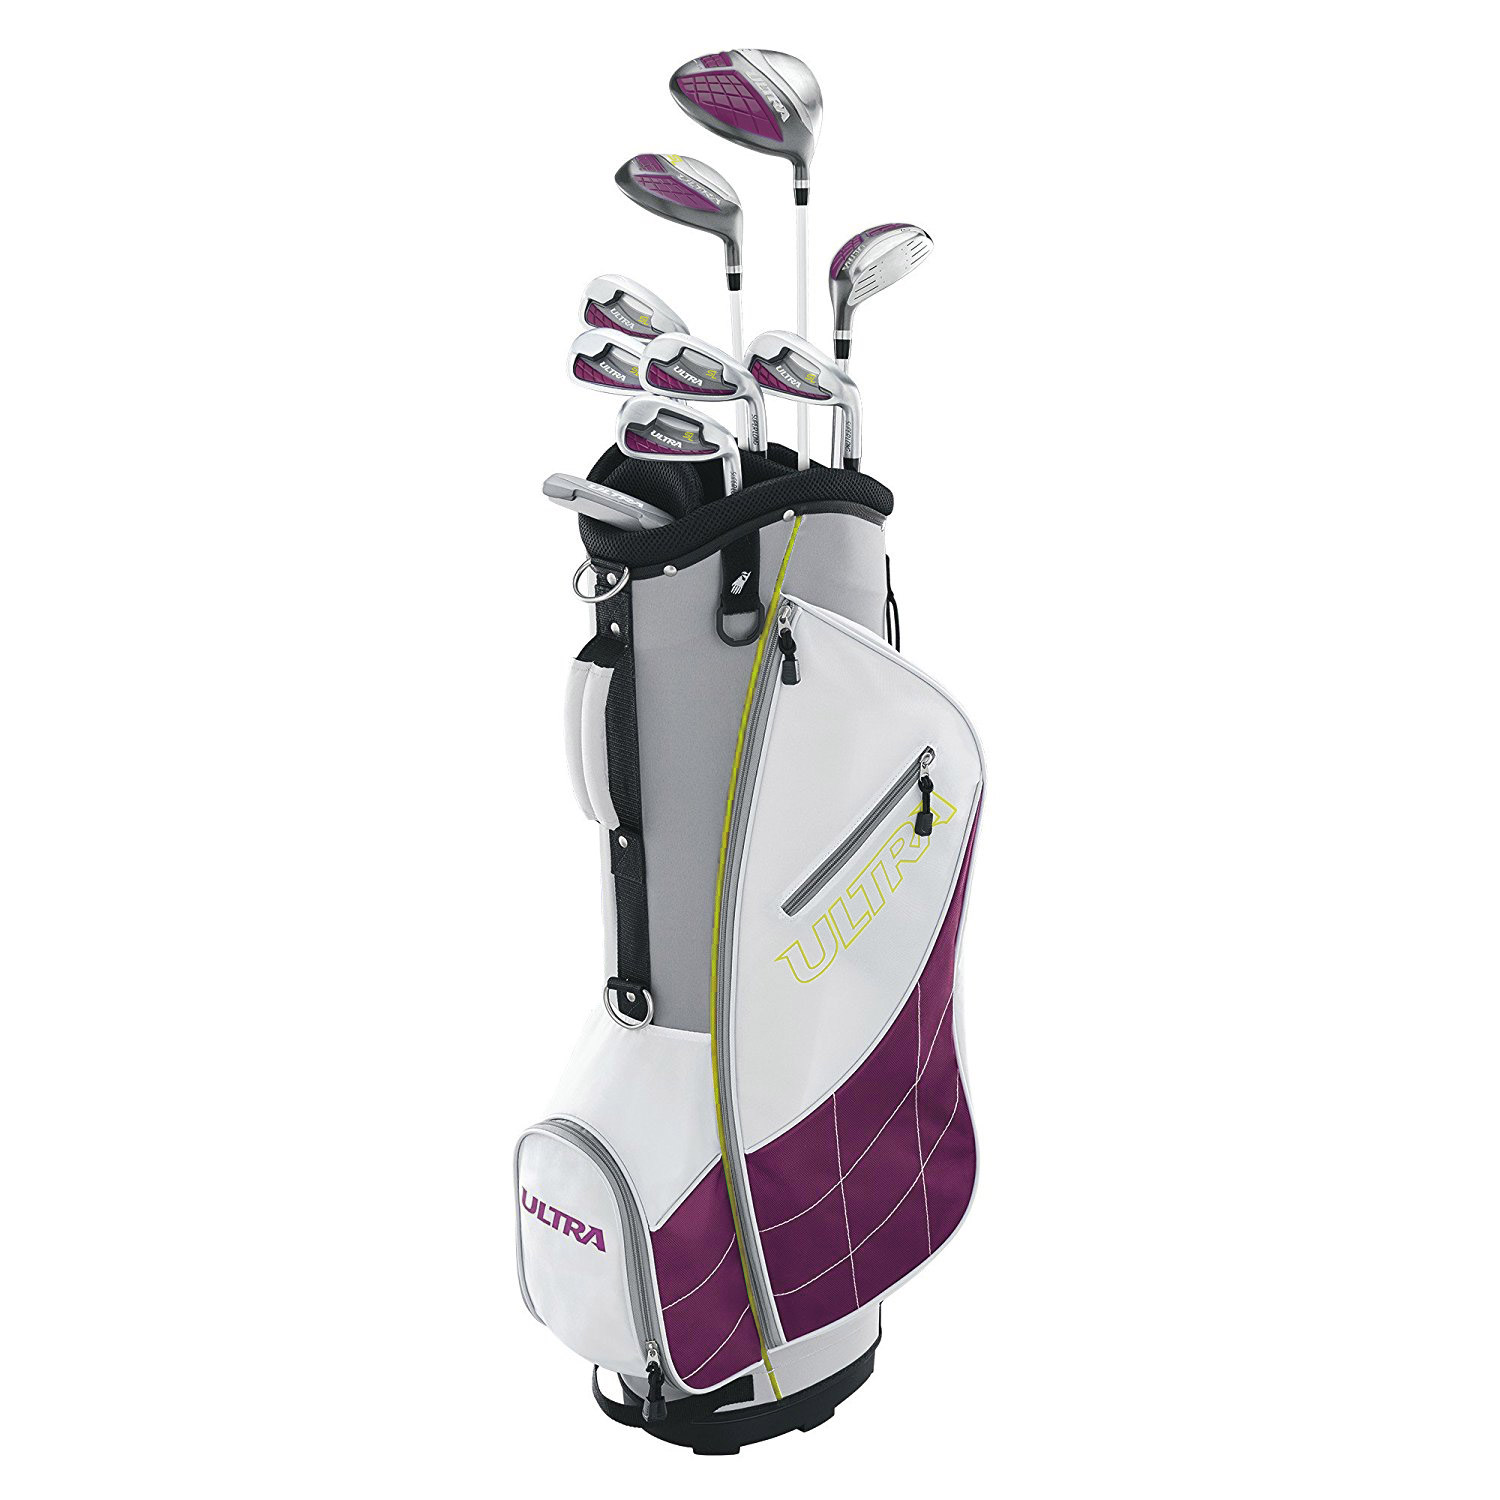 Wilson Ultra Womens Right Handed Super Long Golf Club Set with Cart Bag, Plum by Wilson